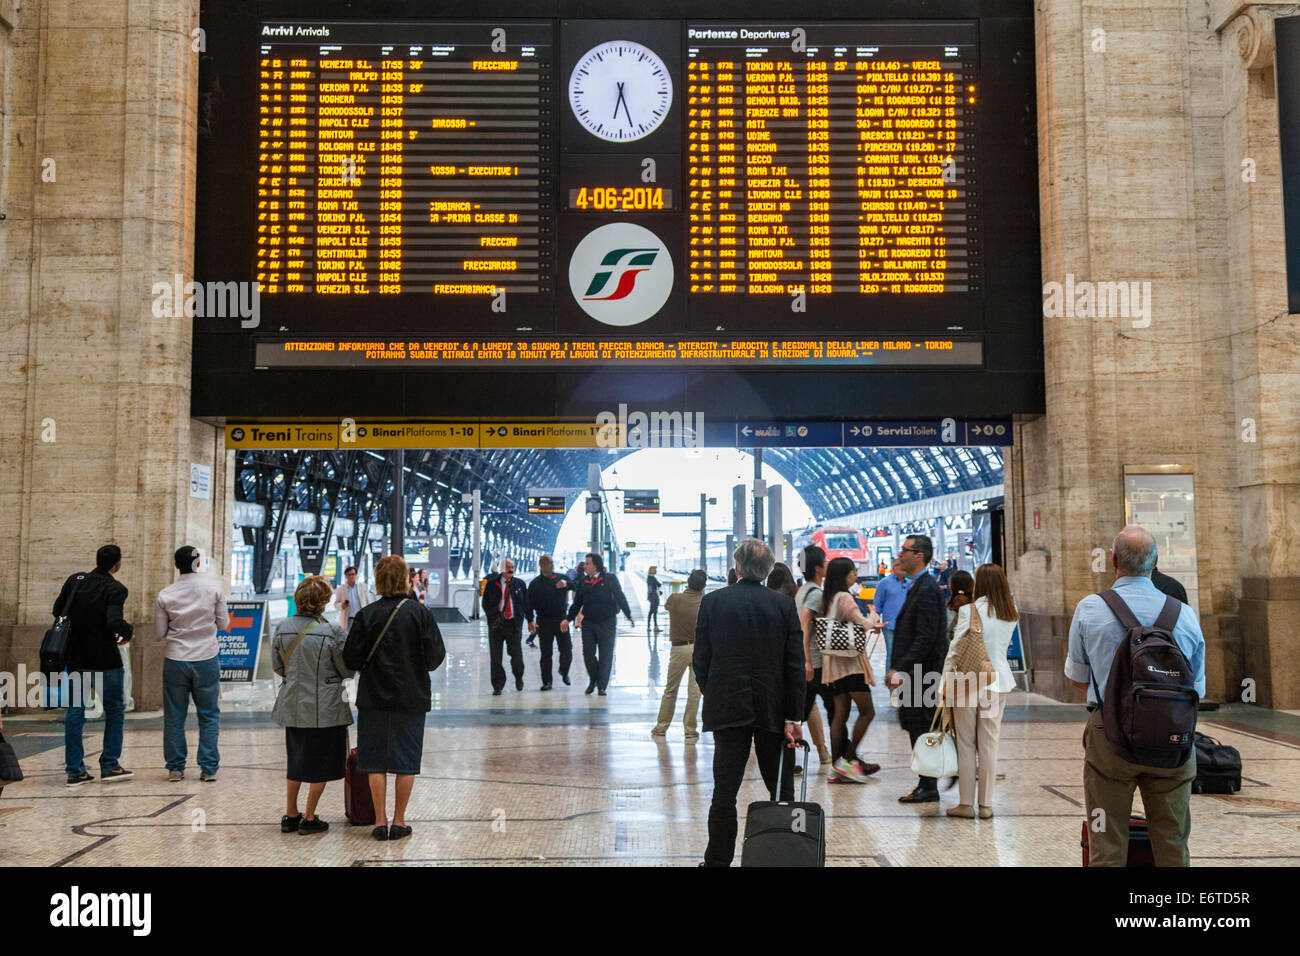 Departures electronic train board and waiting passengers, Milan Central Station, Italy - Stock Image